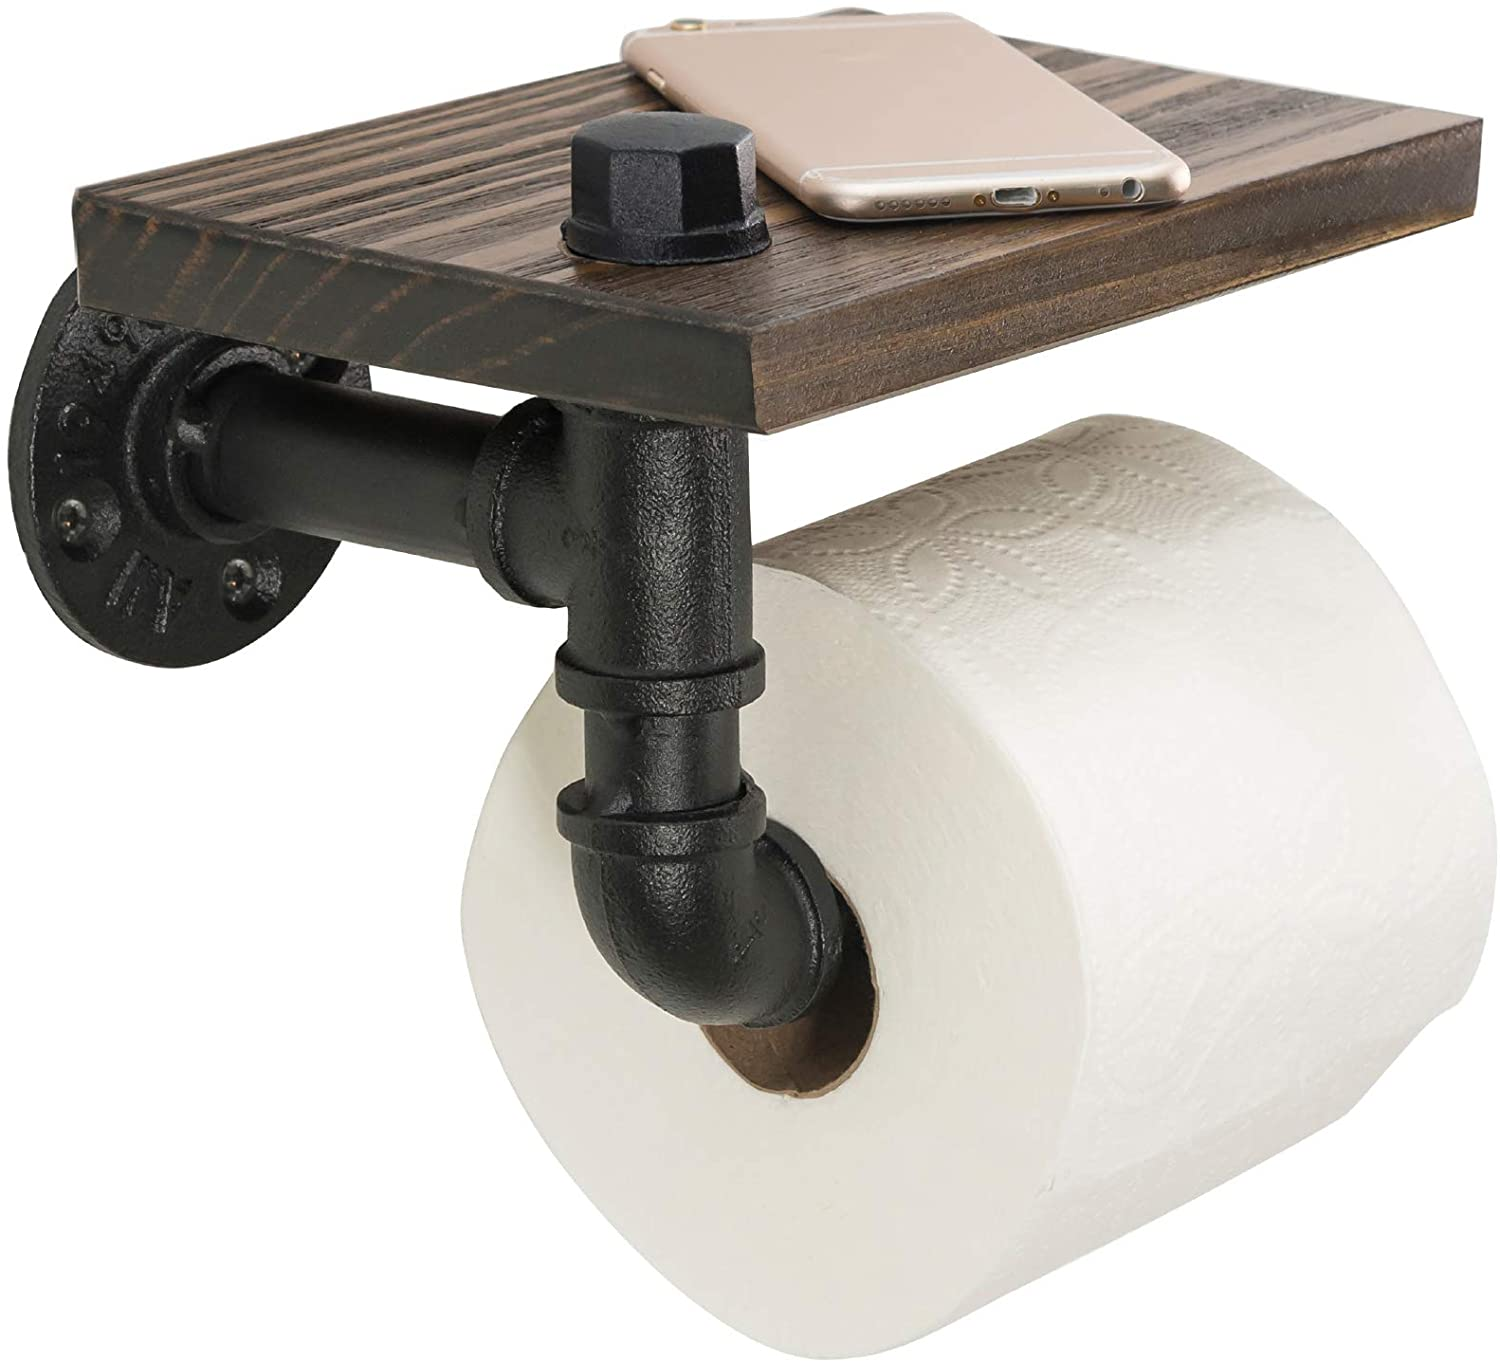 Excello Global Products Industrial Toilet Paper Holder with Rustic Wooden Shelf and Cast Iron Pipe Hardware for Bathroom steampunk home decor ideas